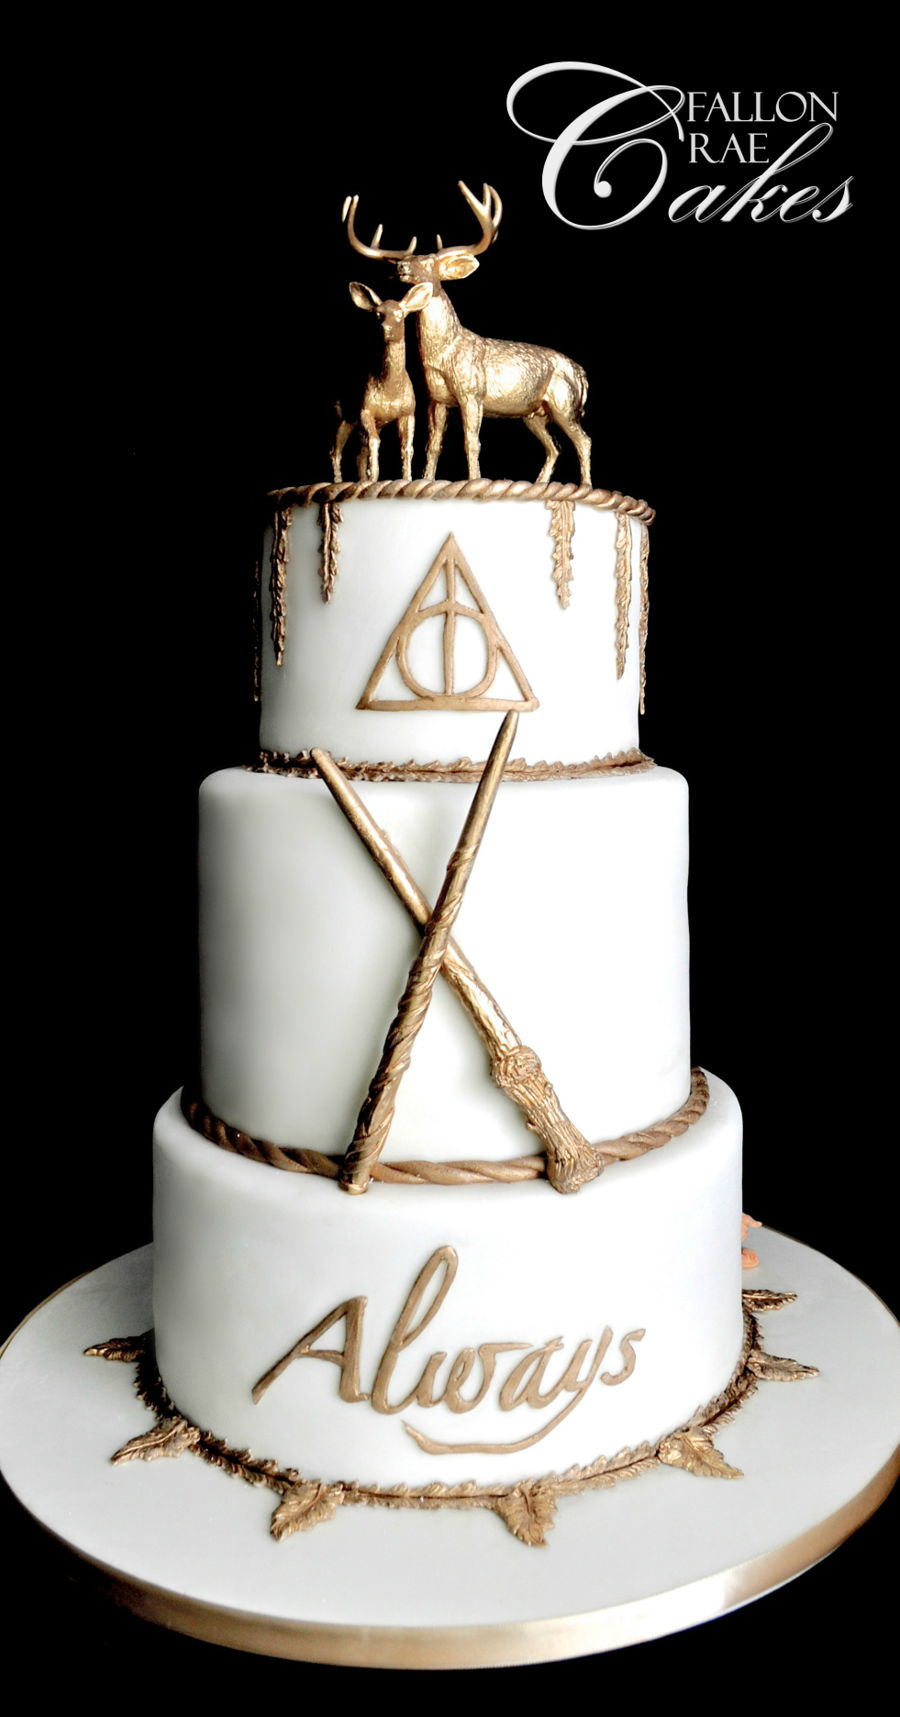 Cake Designs Harry Potter : Harry Potter Wedding Cake - CakeCentral.com